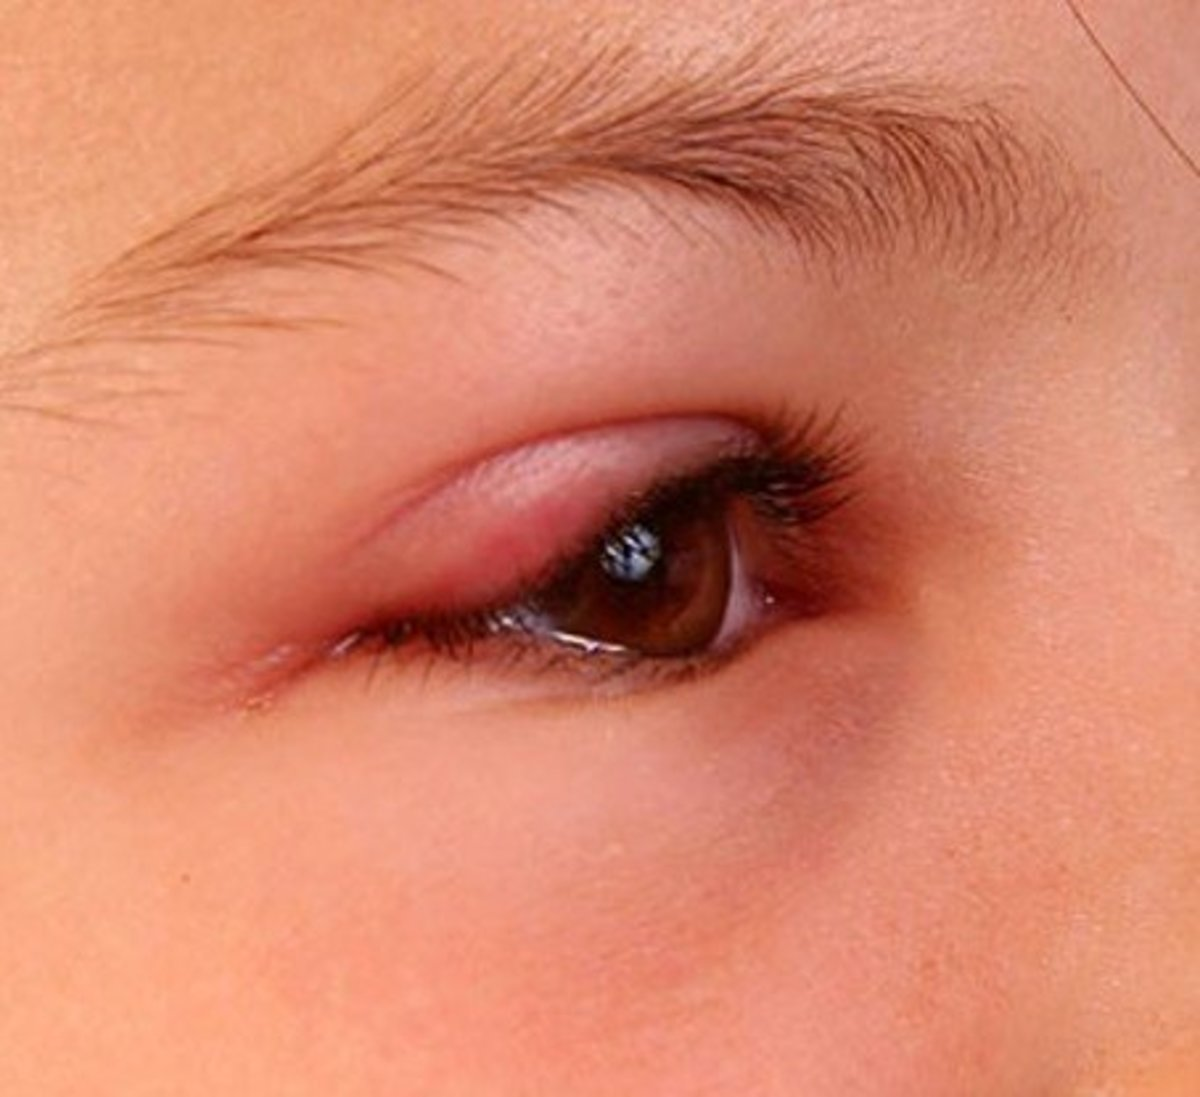 Swollen Eyelid - Symptoms, Treatment, Pictures, Causes